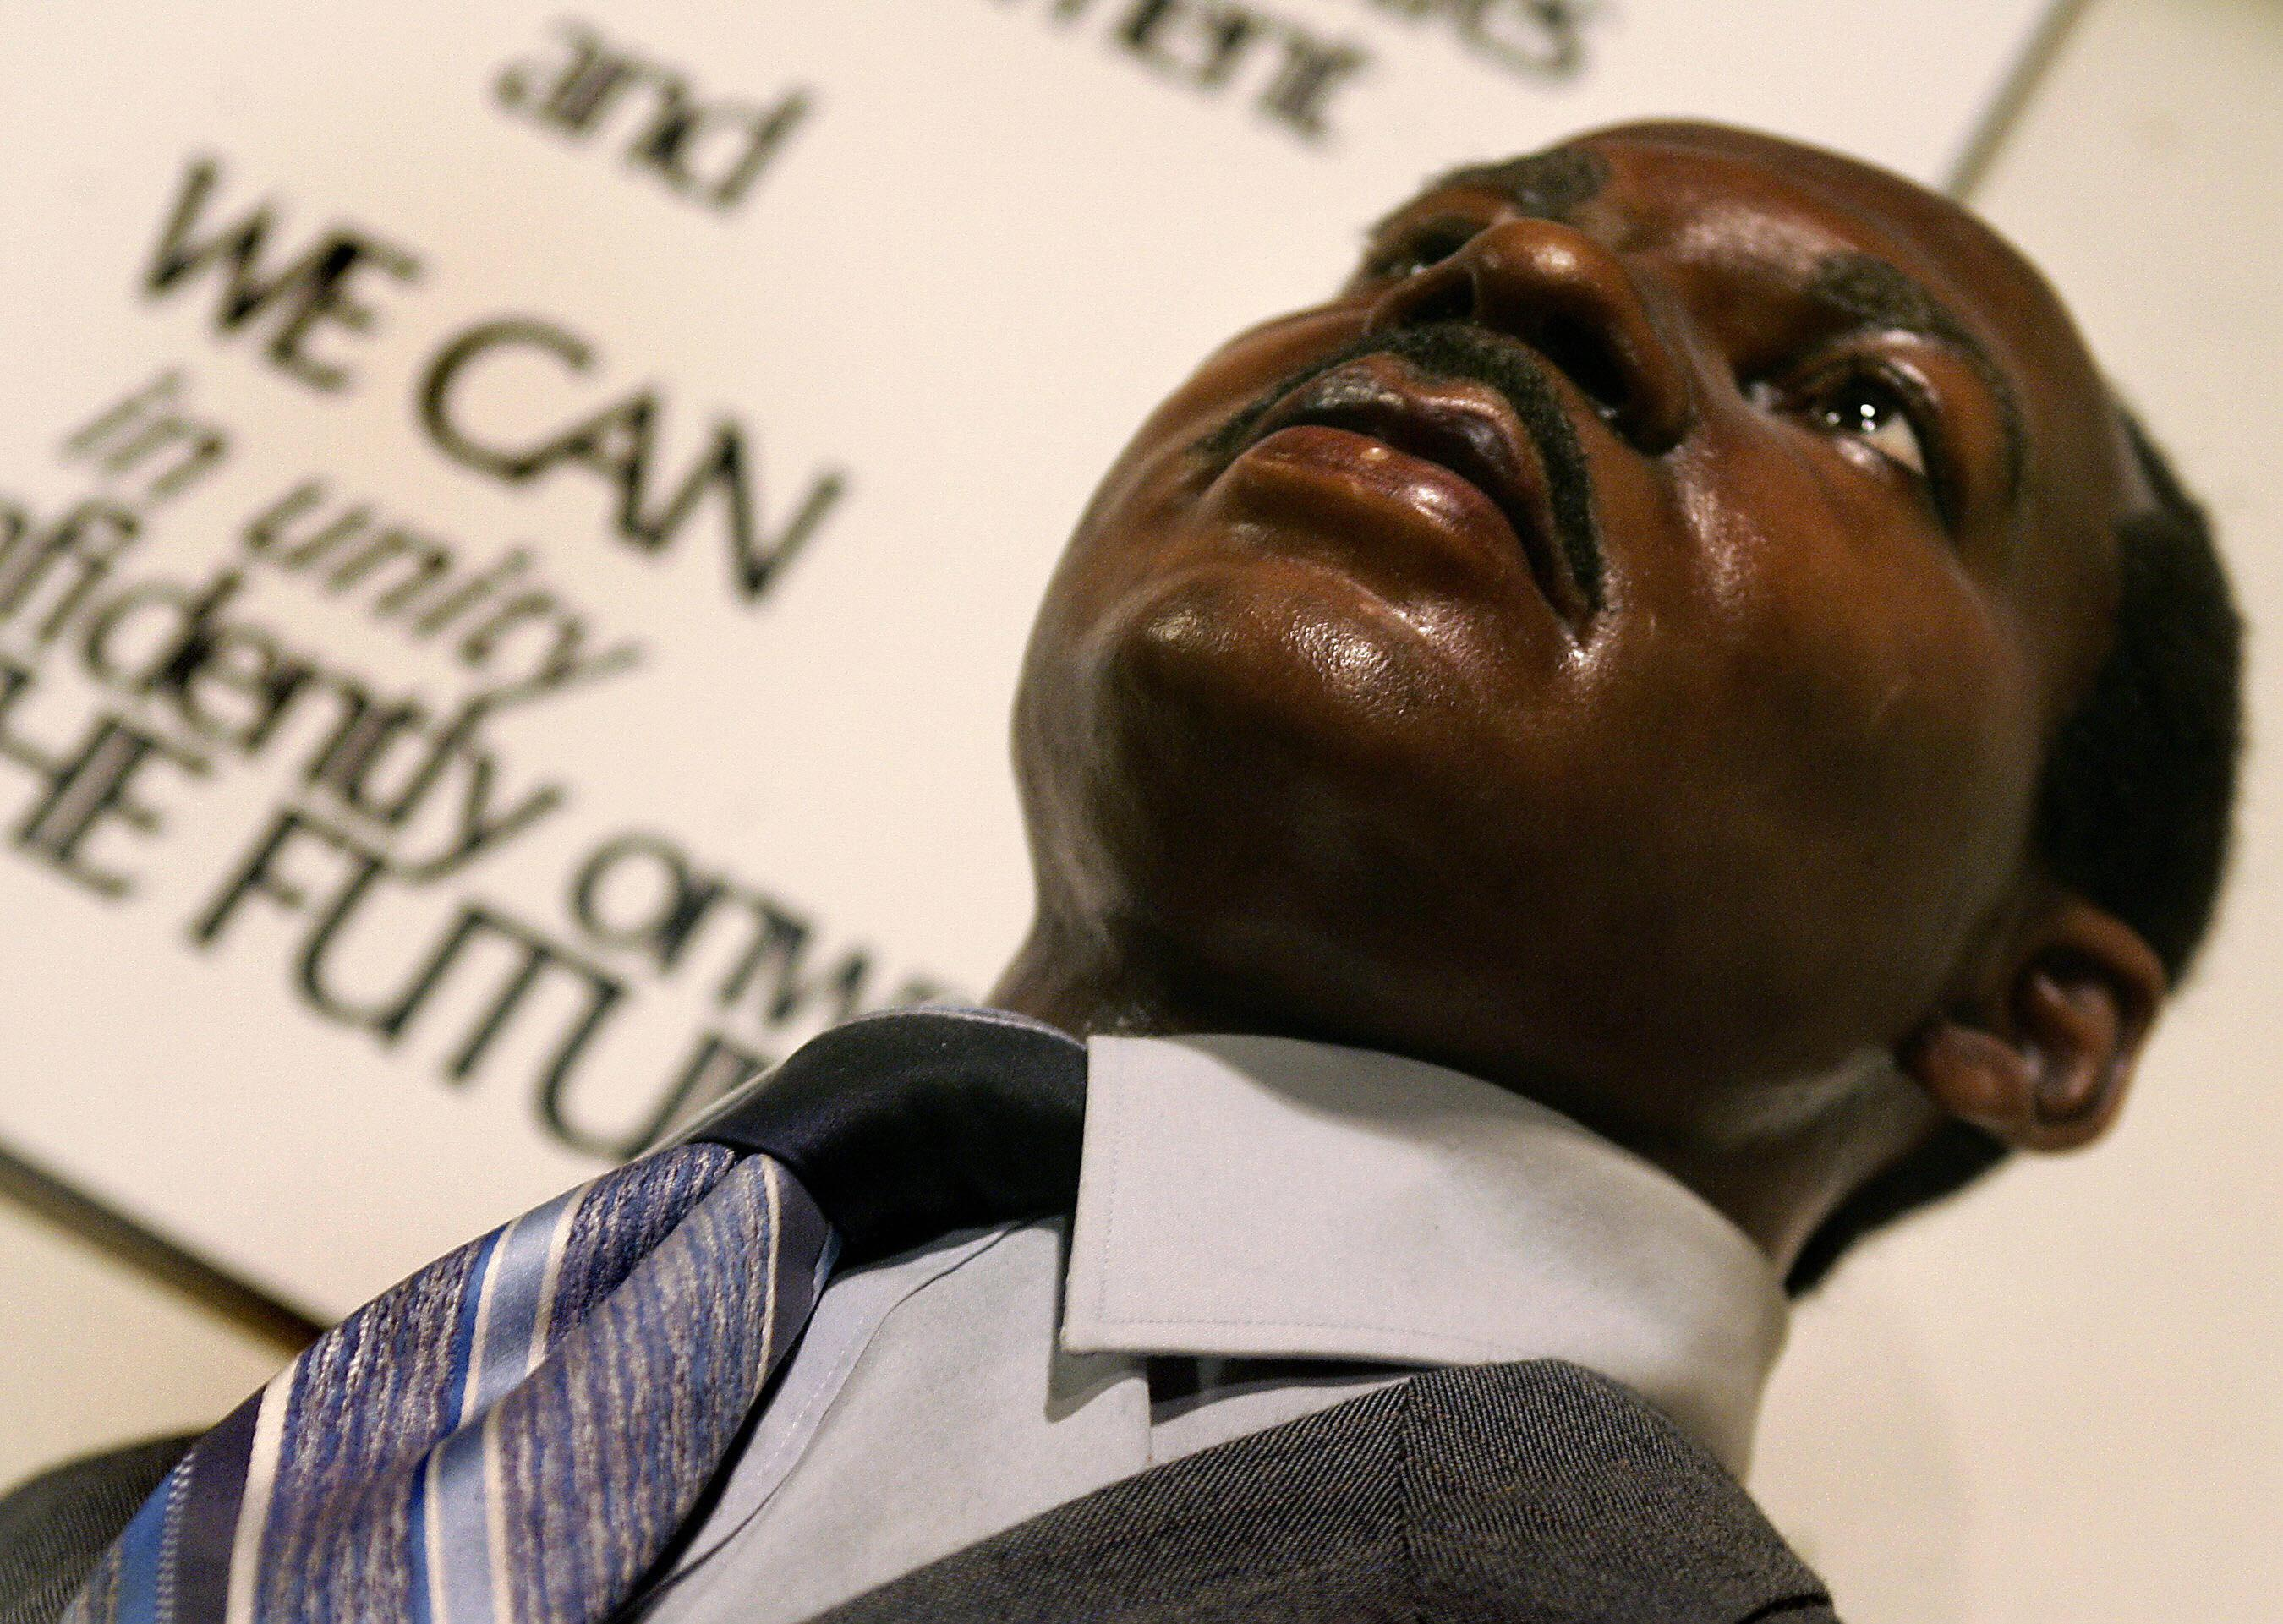 A wax figure of Dr. Martin Luther King Jr.